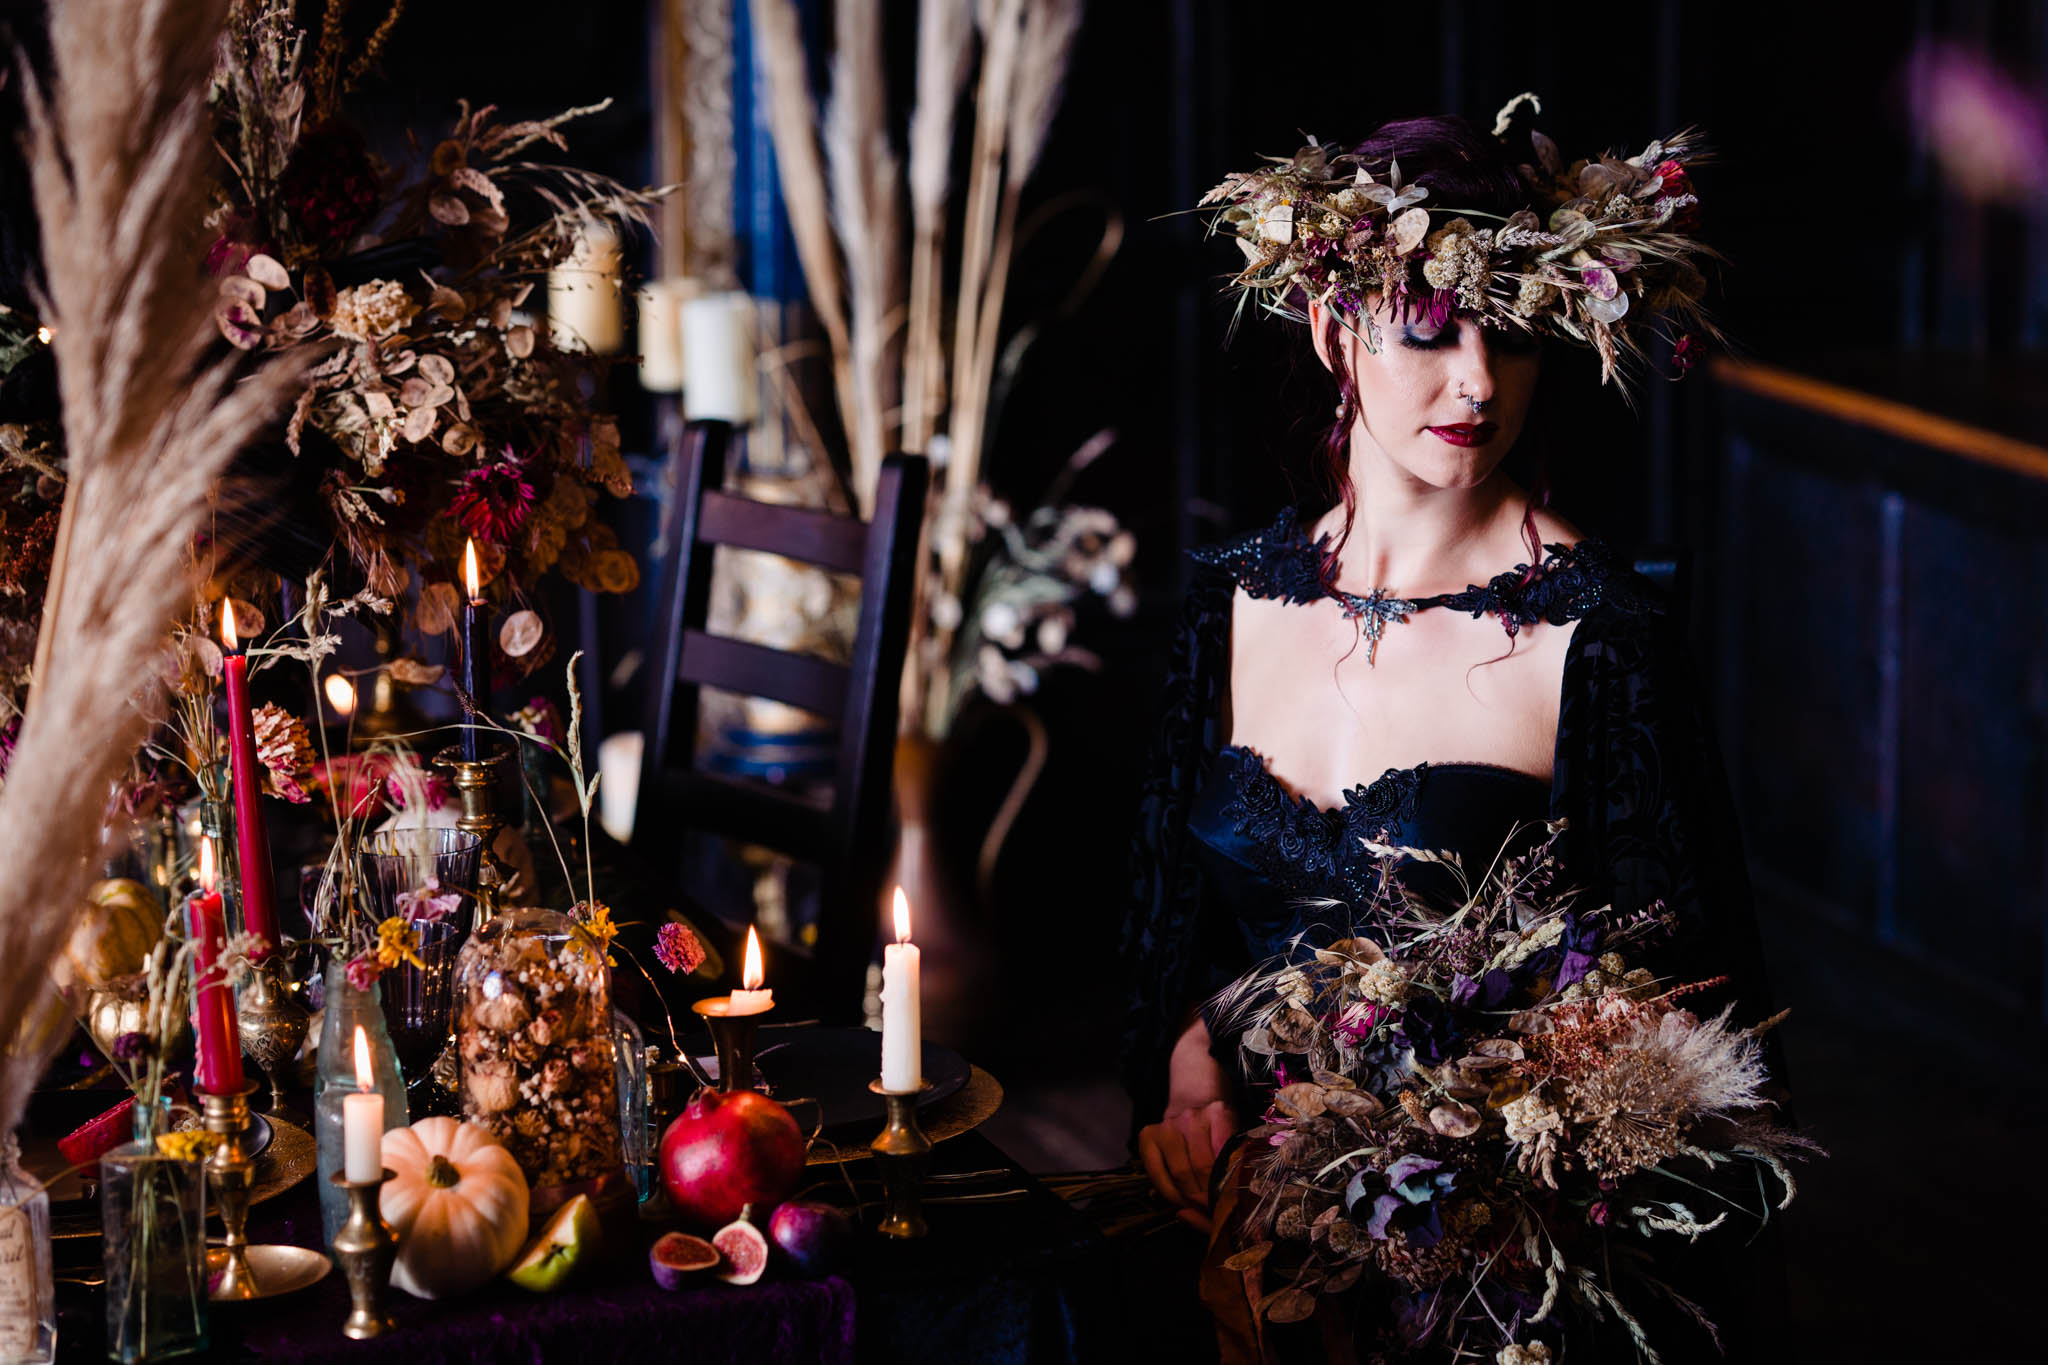 autumn wedding - gothic wedding - dark wedding - autumn wedding flowers - dried flower wedding decor - wedding flower crown